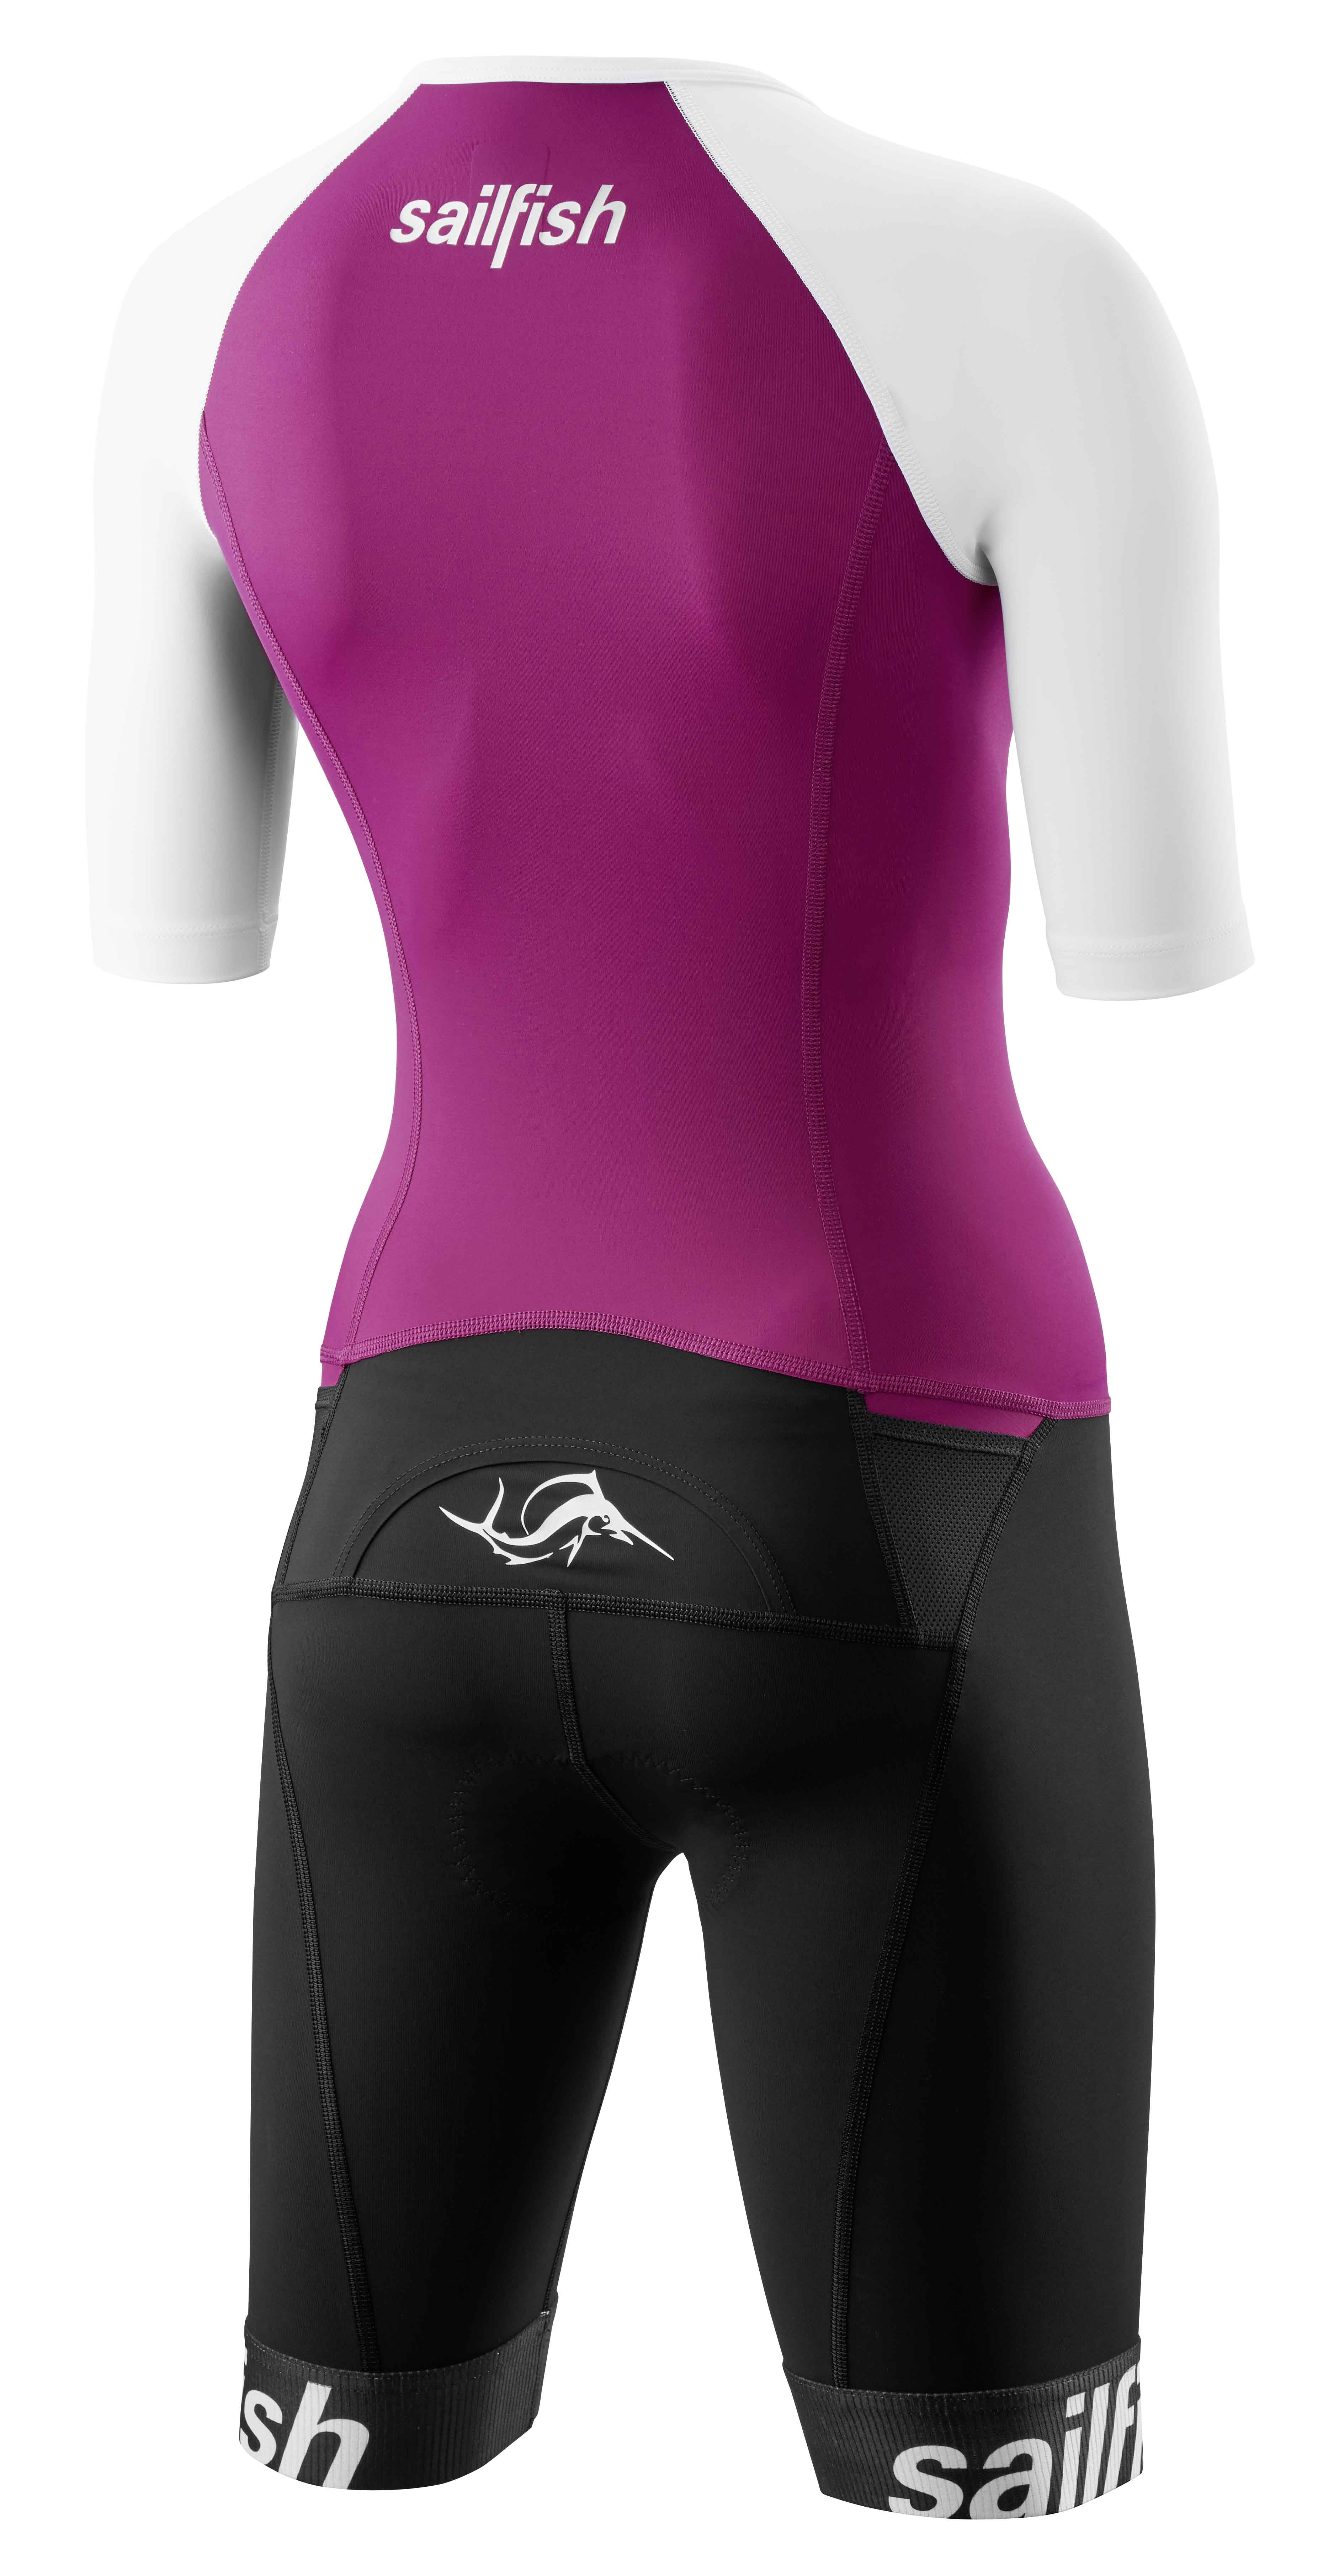 Sailfish - Aerosuit Comp - Women